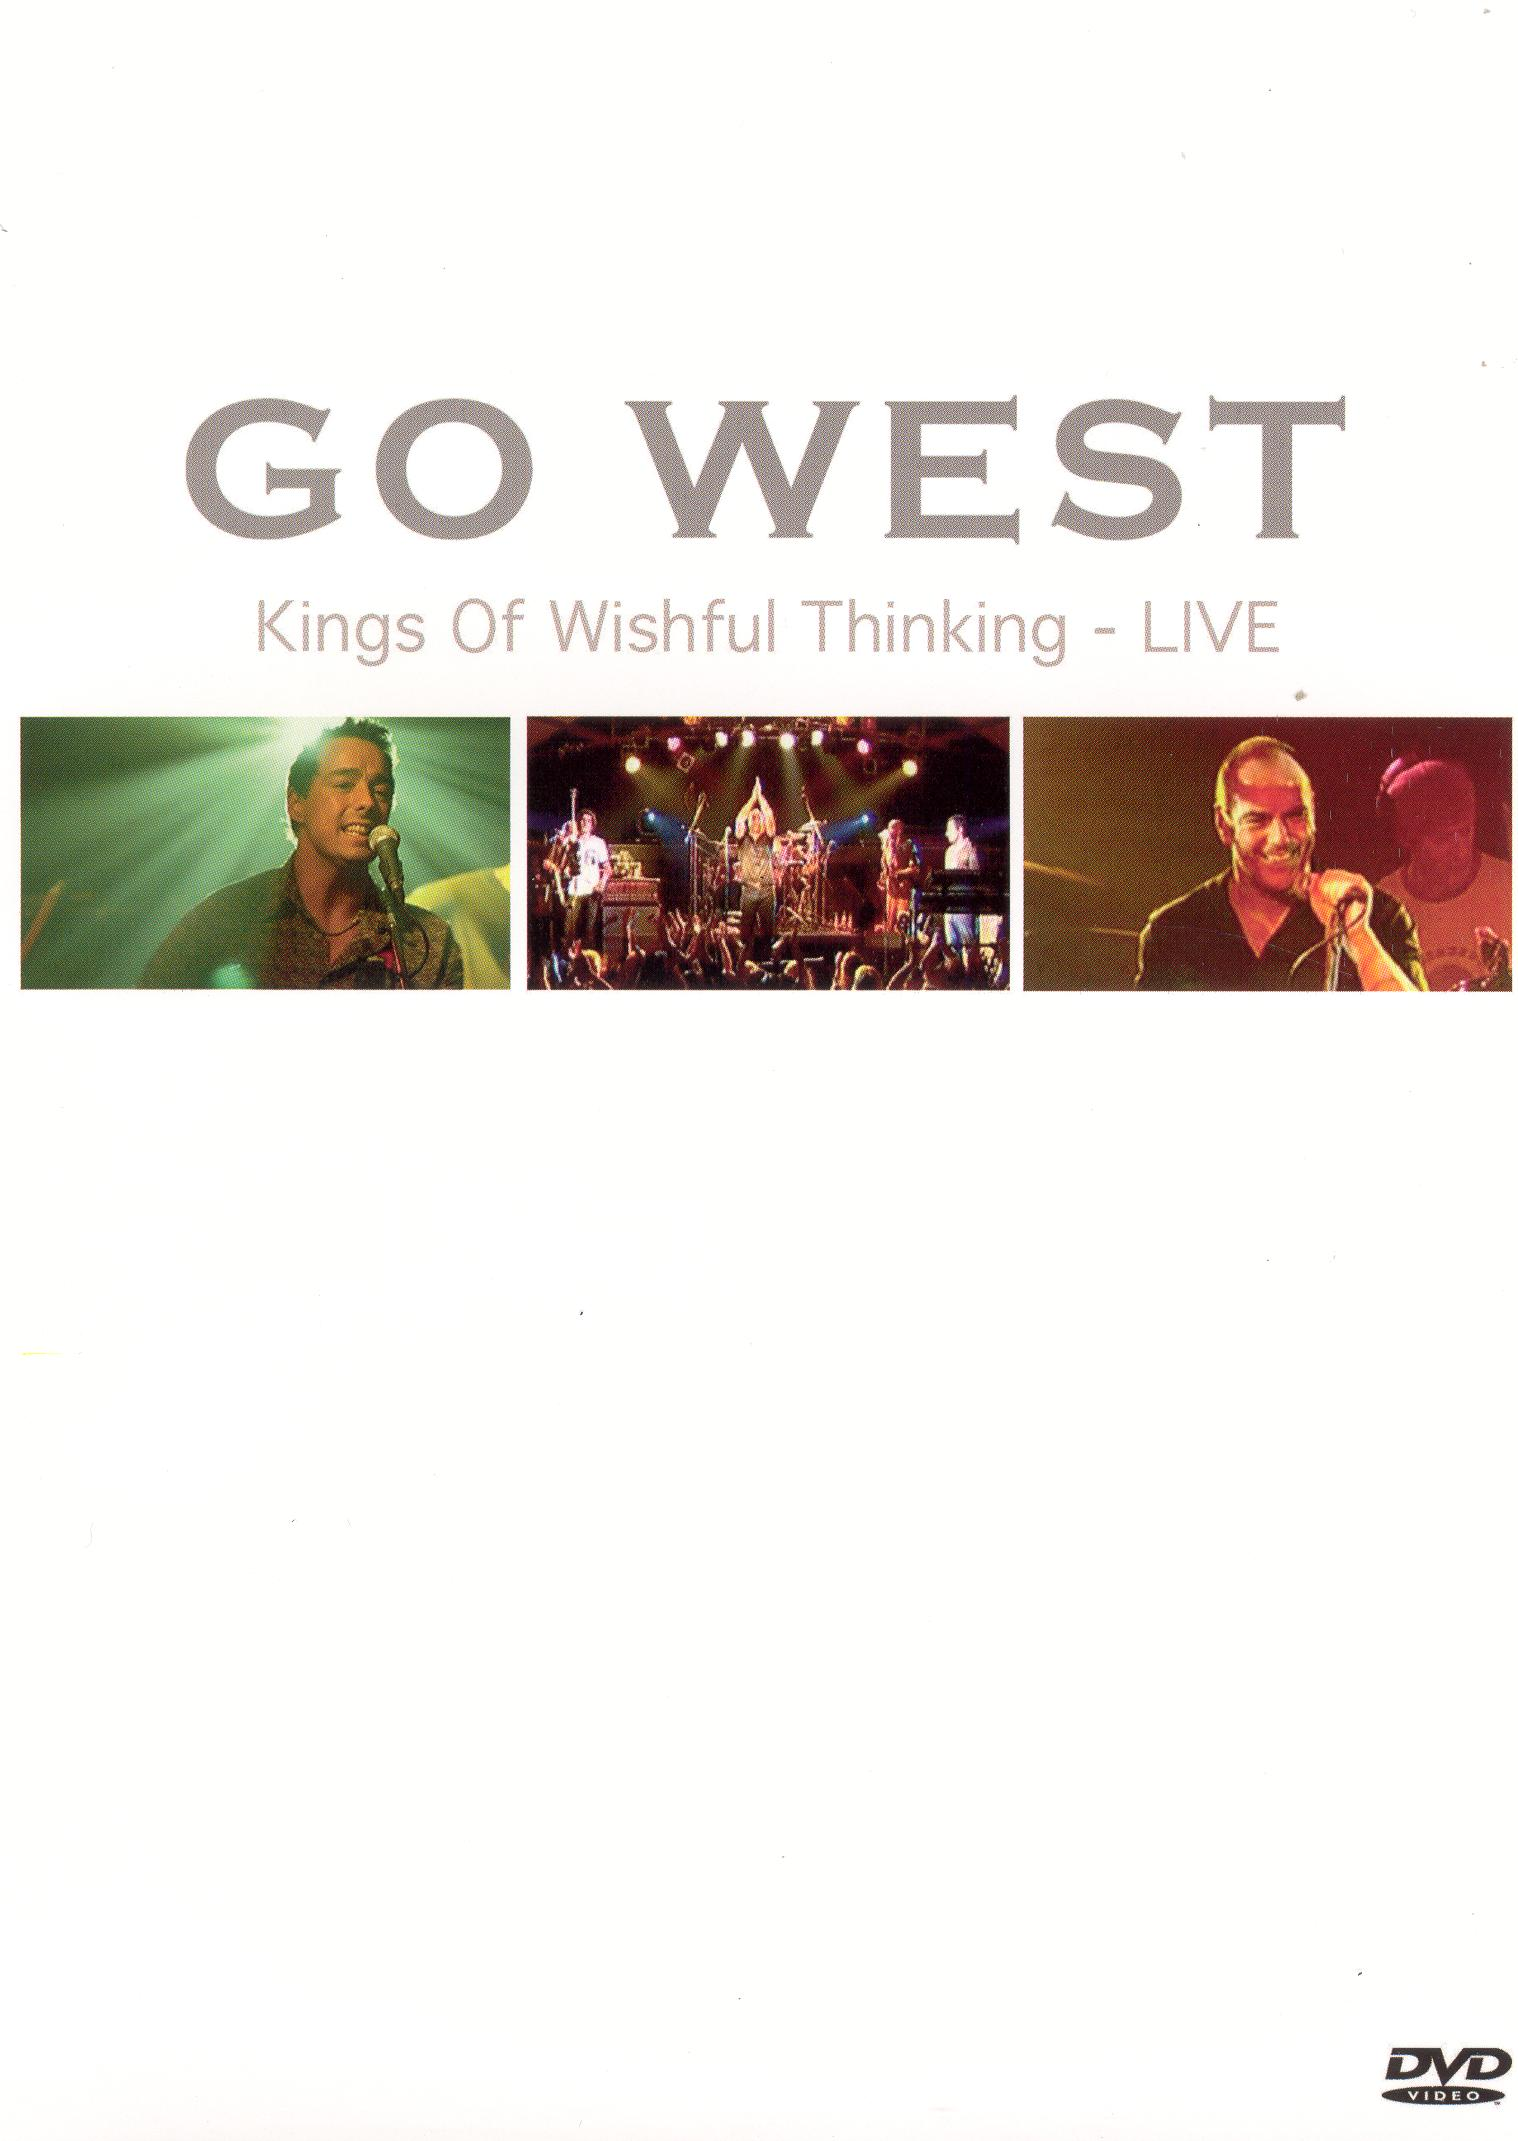 Go West: Kings of Wishful Thinking - Live